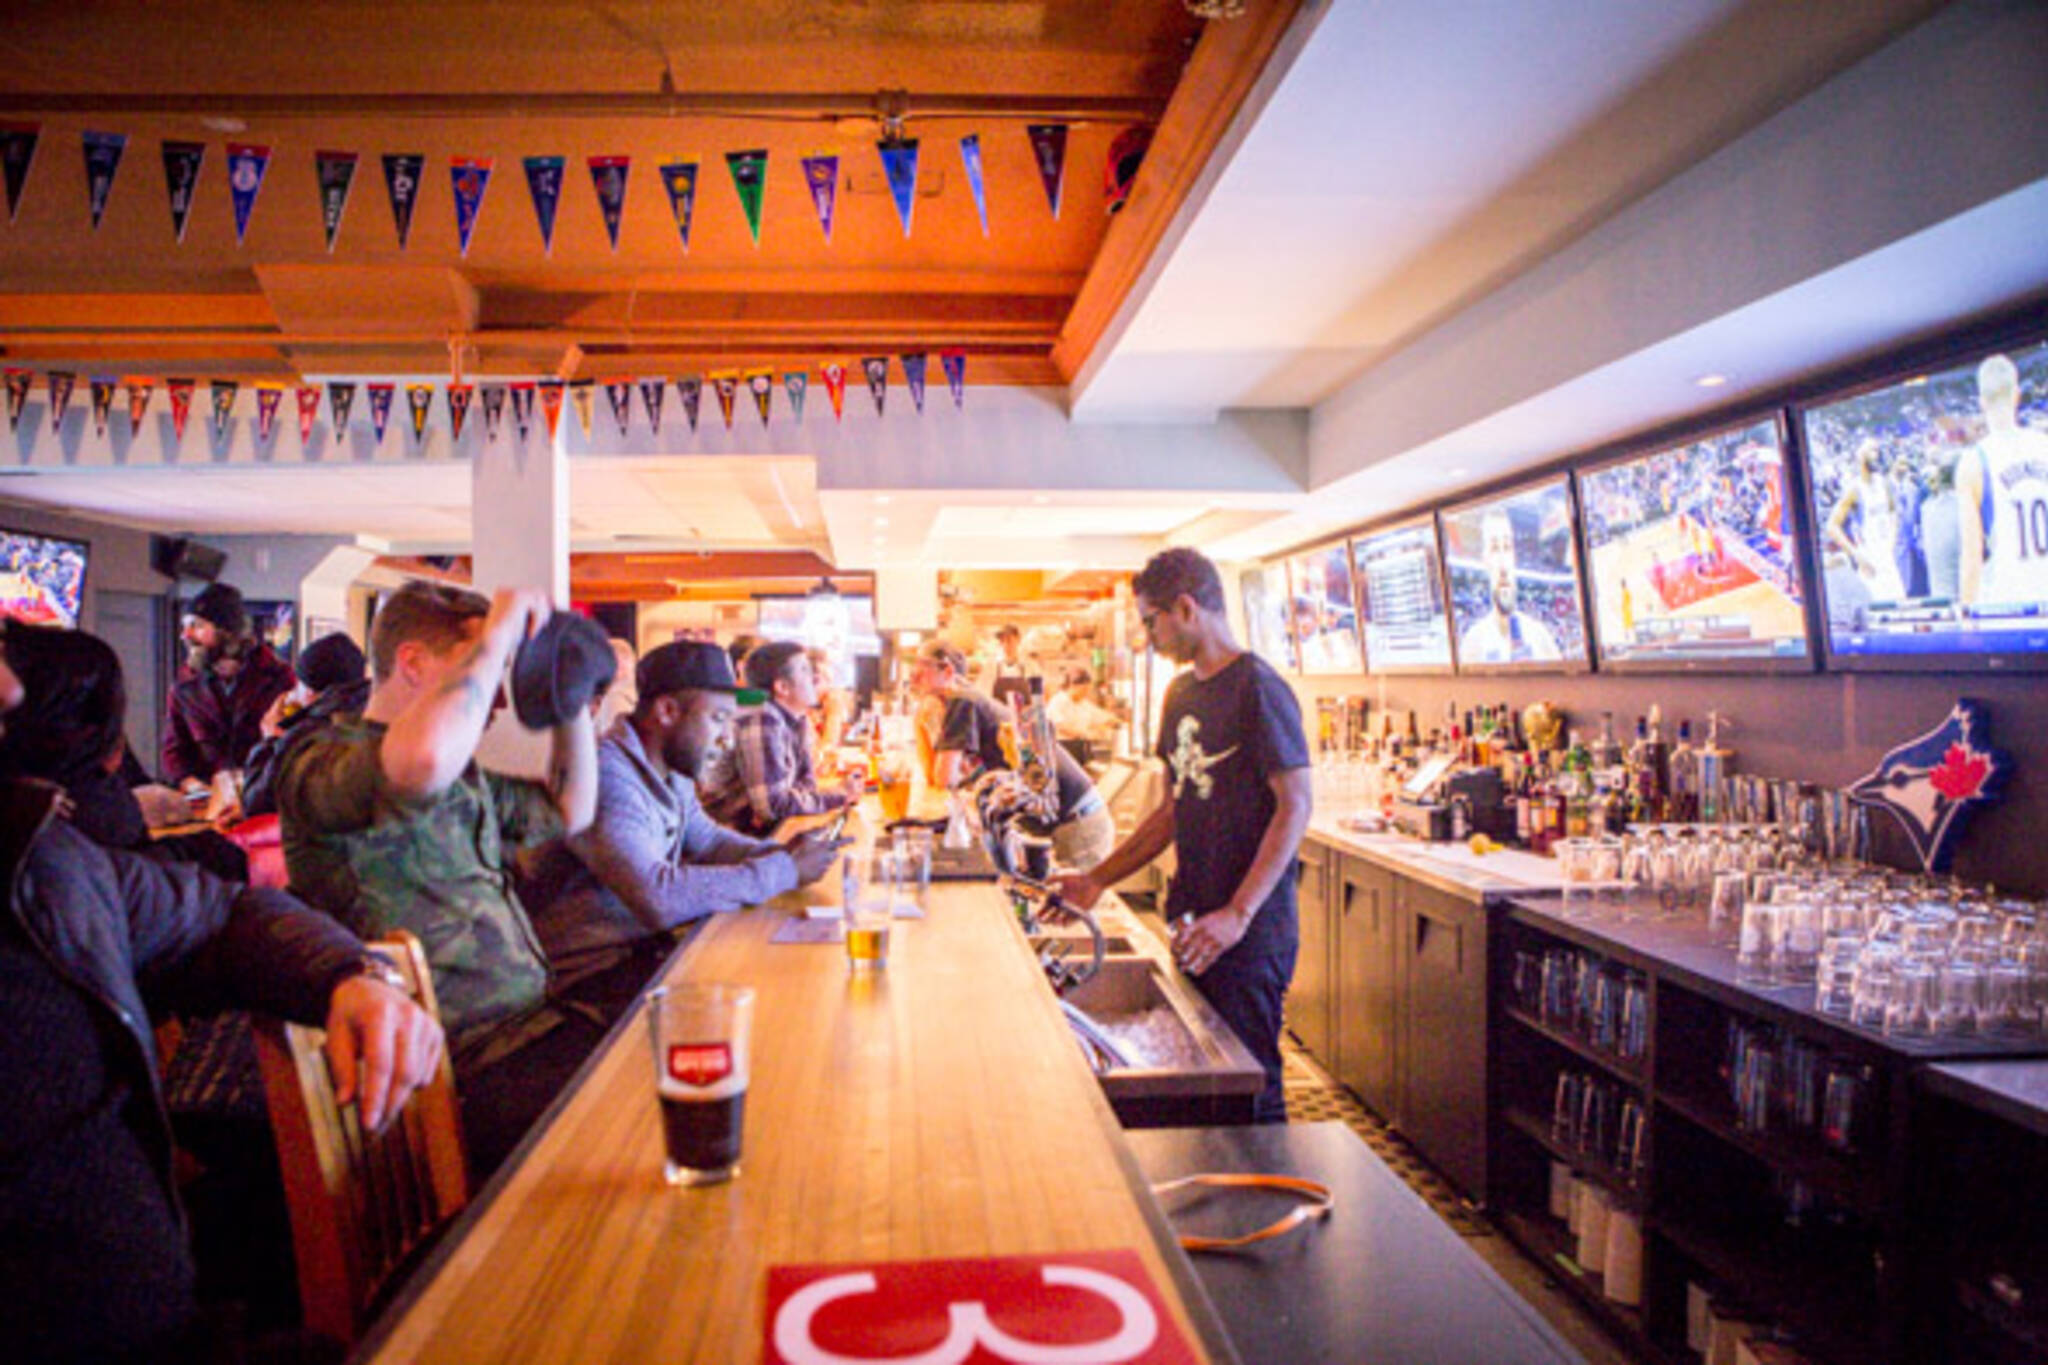 The top 10 bars to watch a Raptors game in Toronto